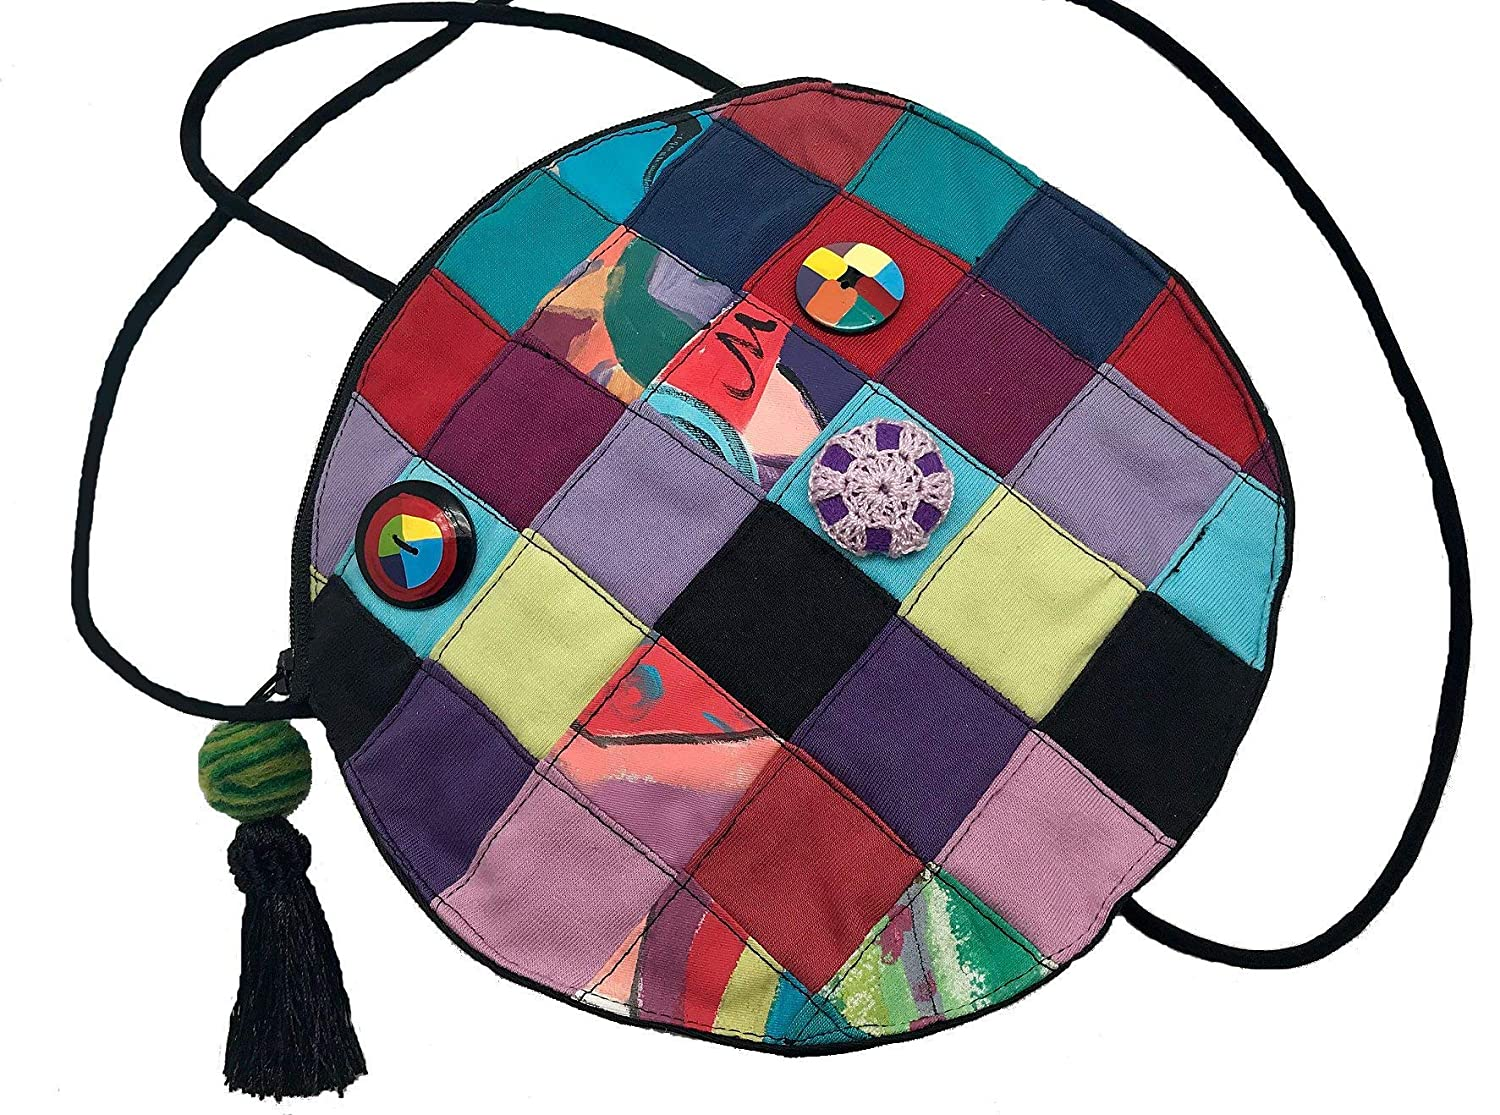 Women's Handmade Recycled Patchwork Cross - LRW DESIGNS Opening large release sale Max 57% OFF Body Bag